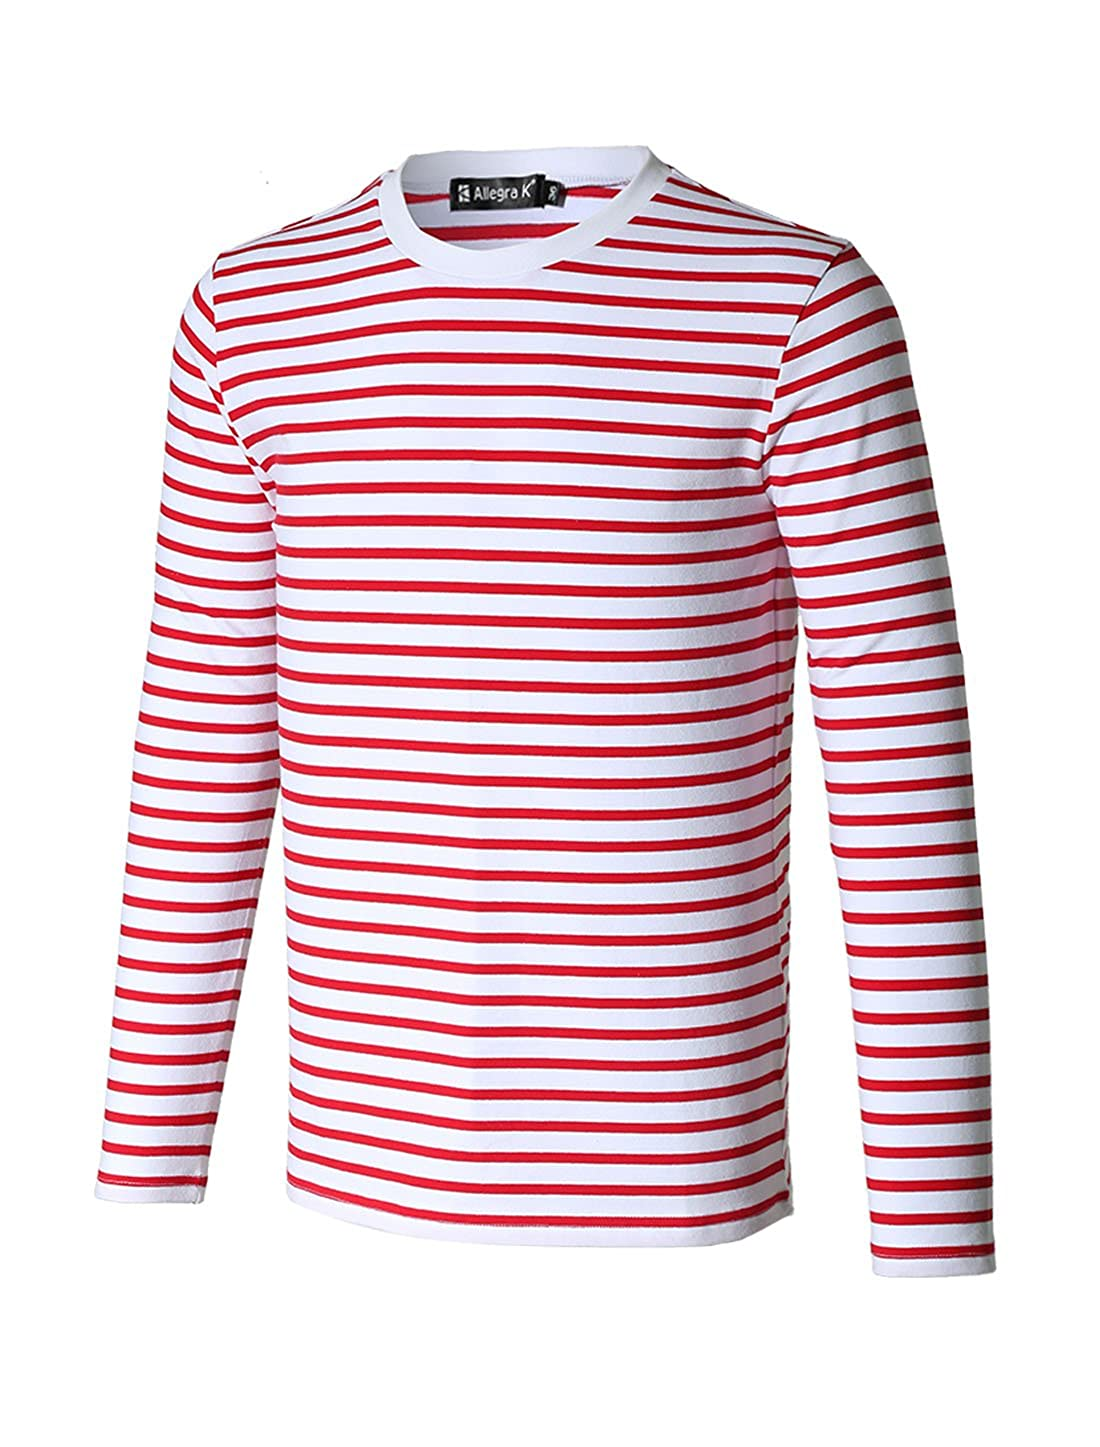 Men's Pirate Crew Neck Red Striped Long Sleeves T-Shirt